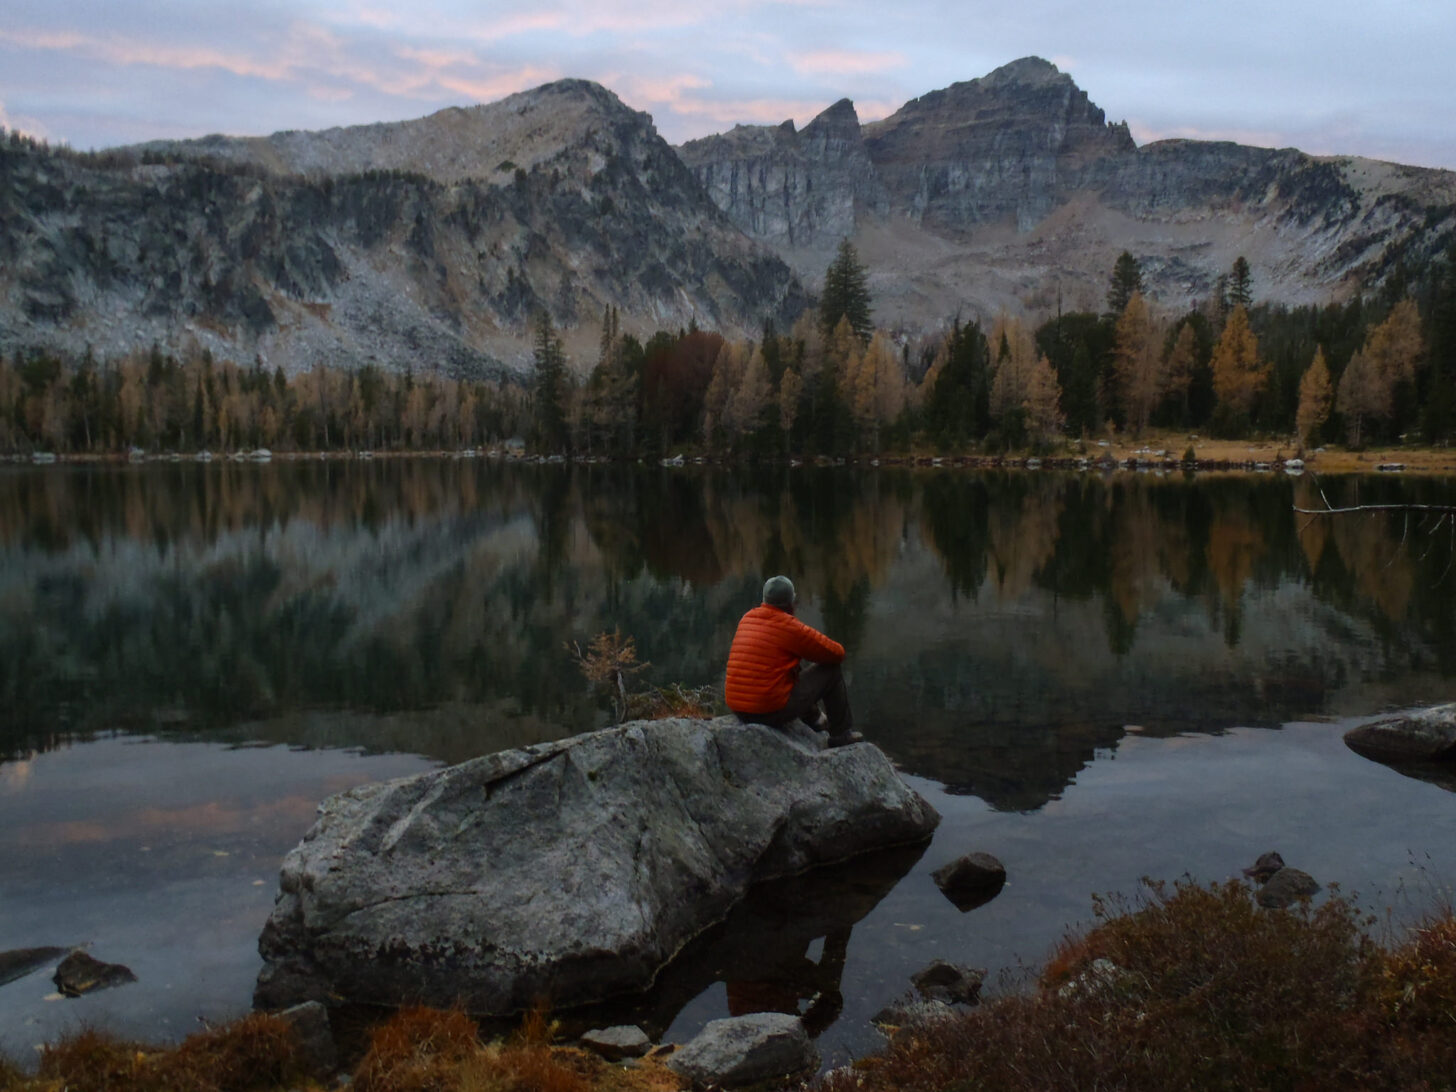 a man sits on a rock overlooking a calm, flat lake with rugged mountains in the distance.